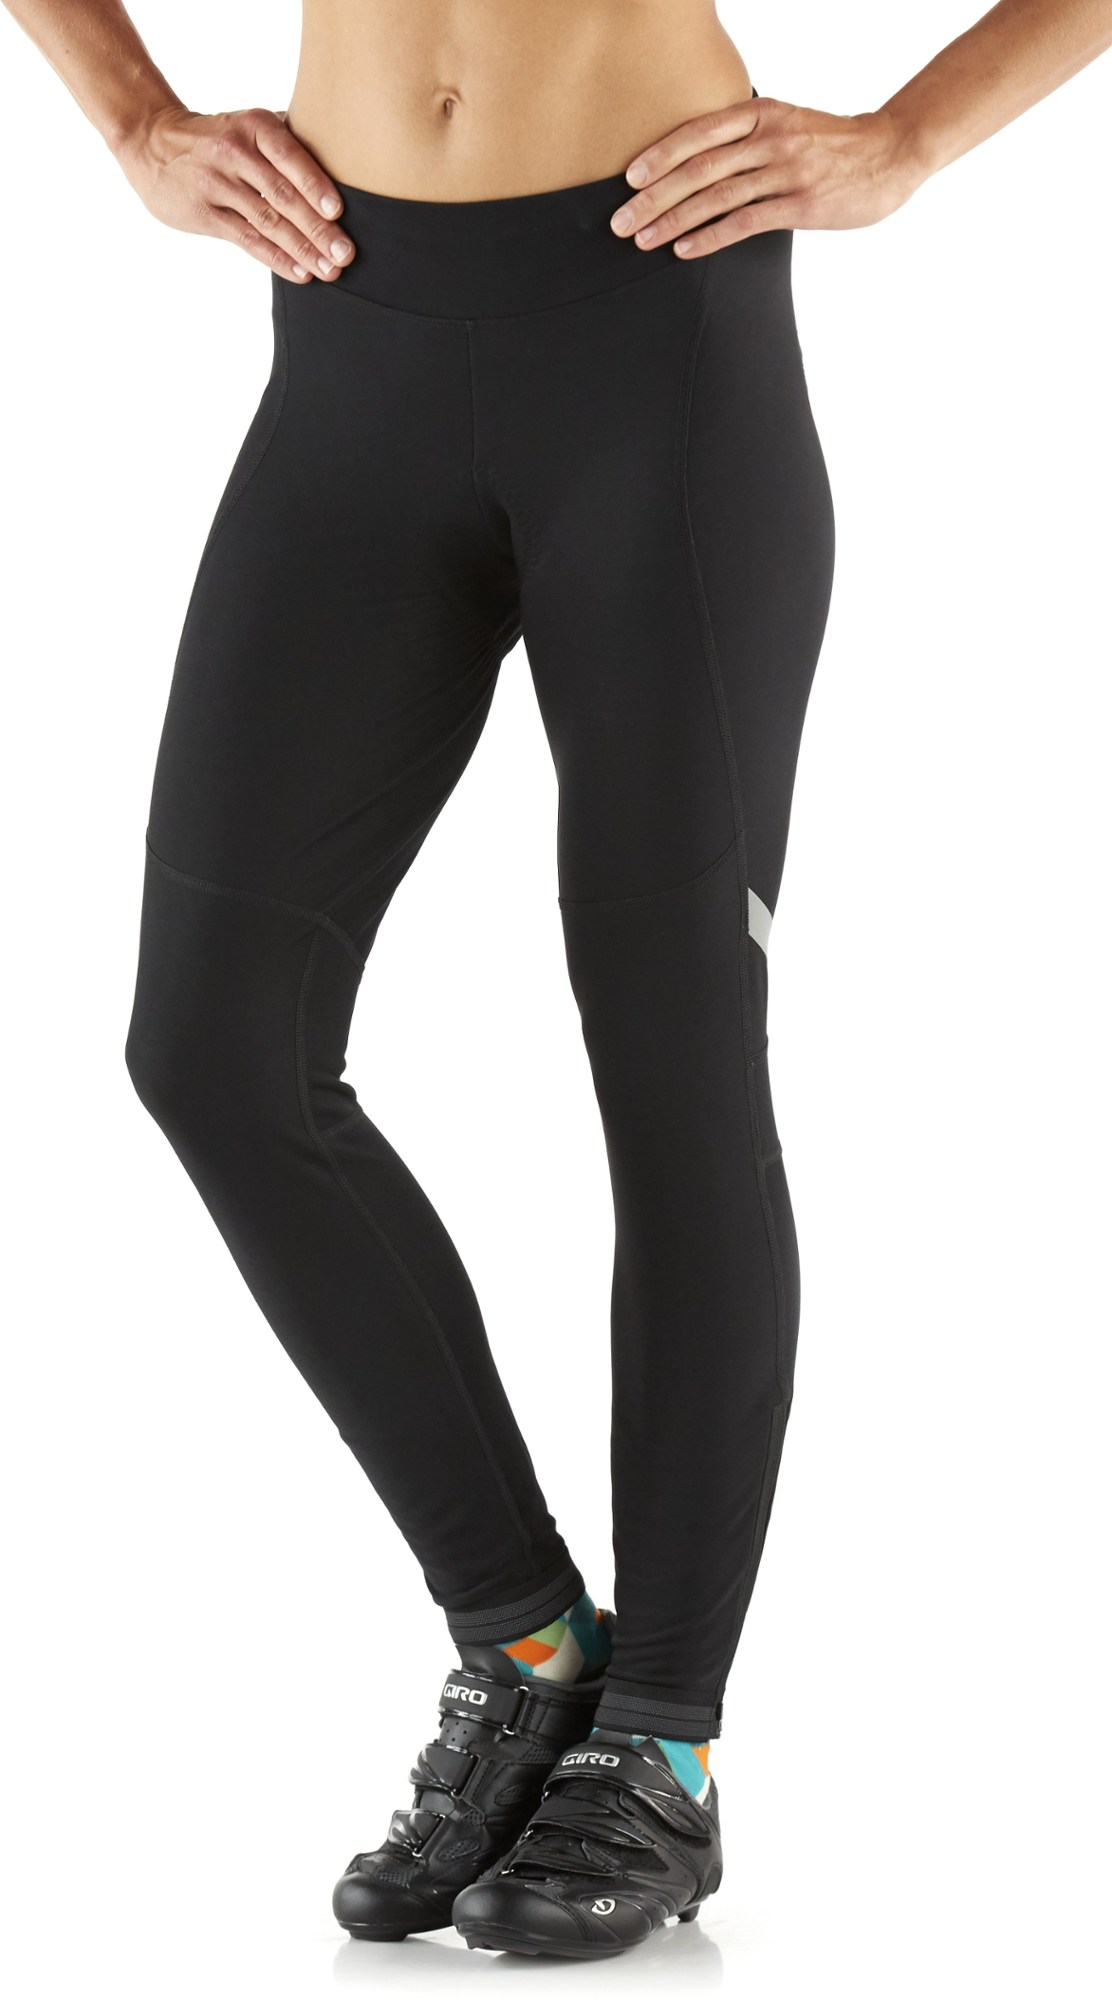 Co-op Cycles Thermal Padded Tights - Women's